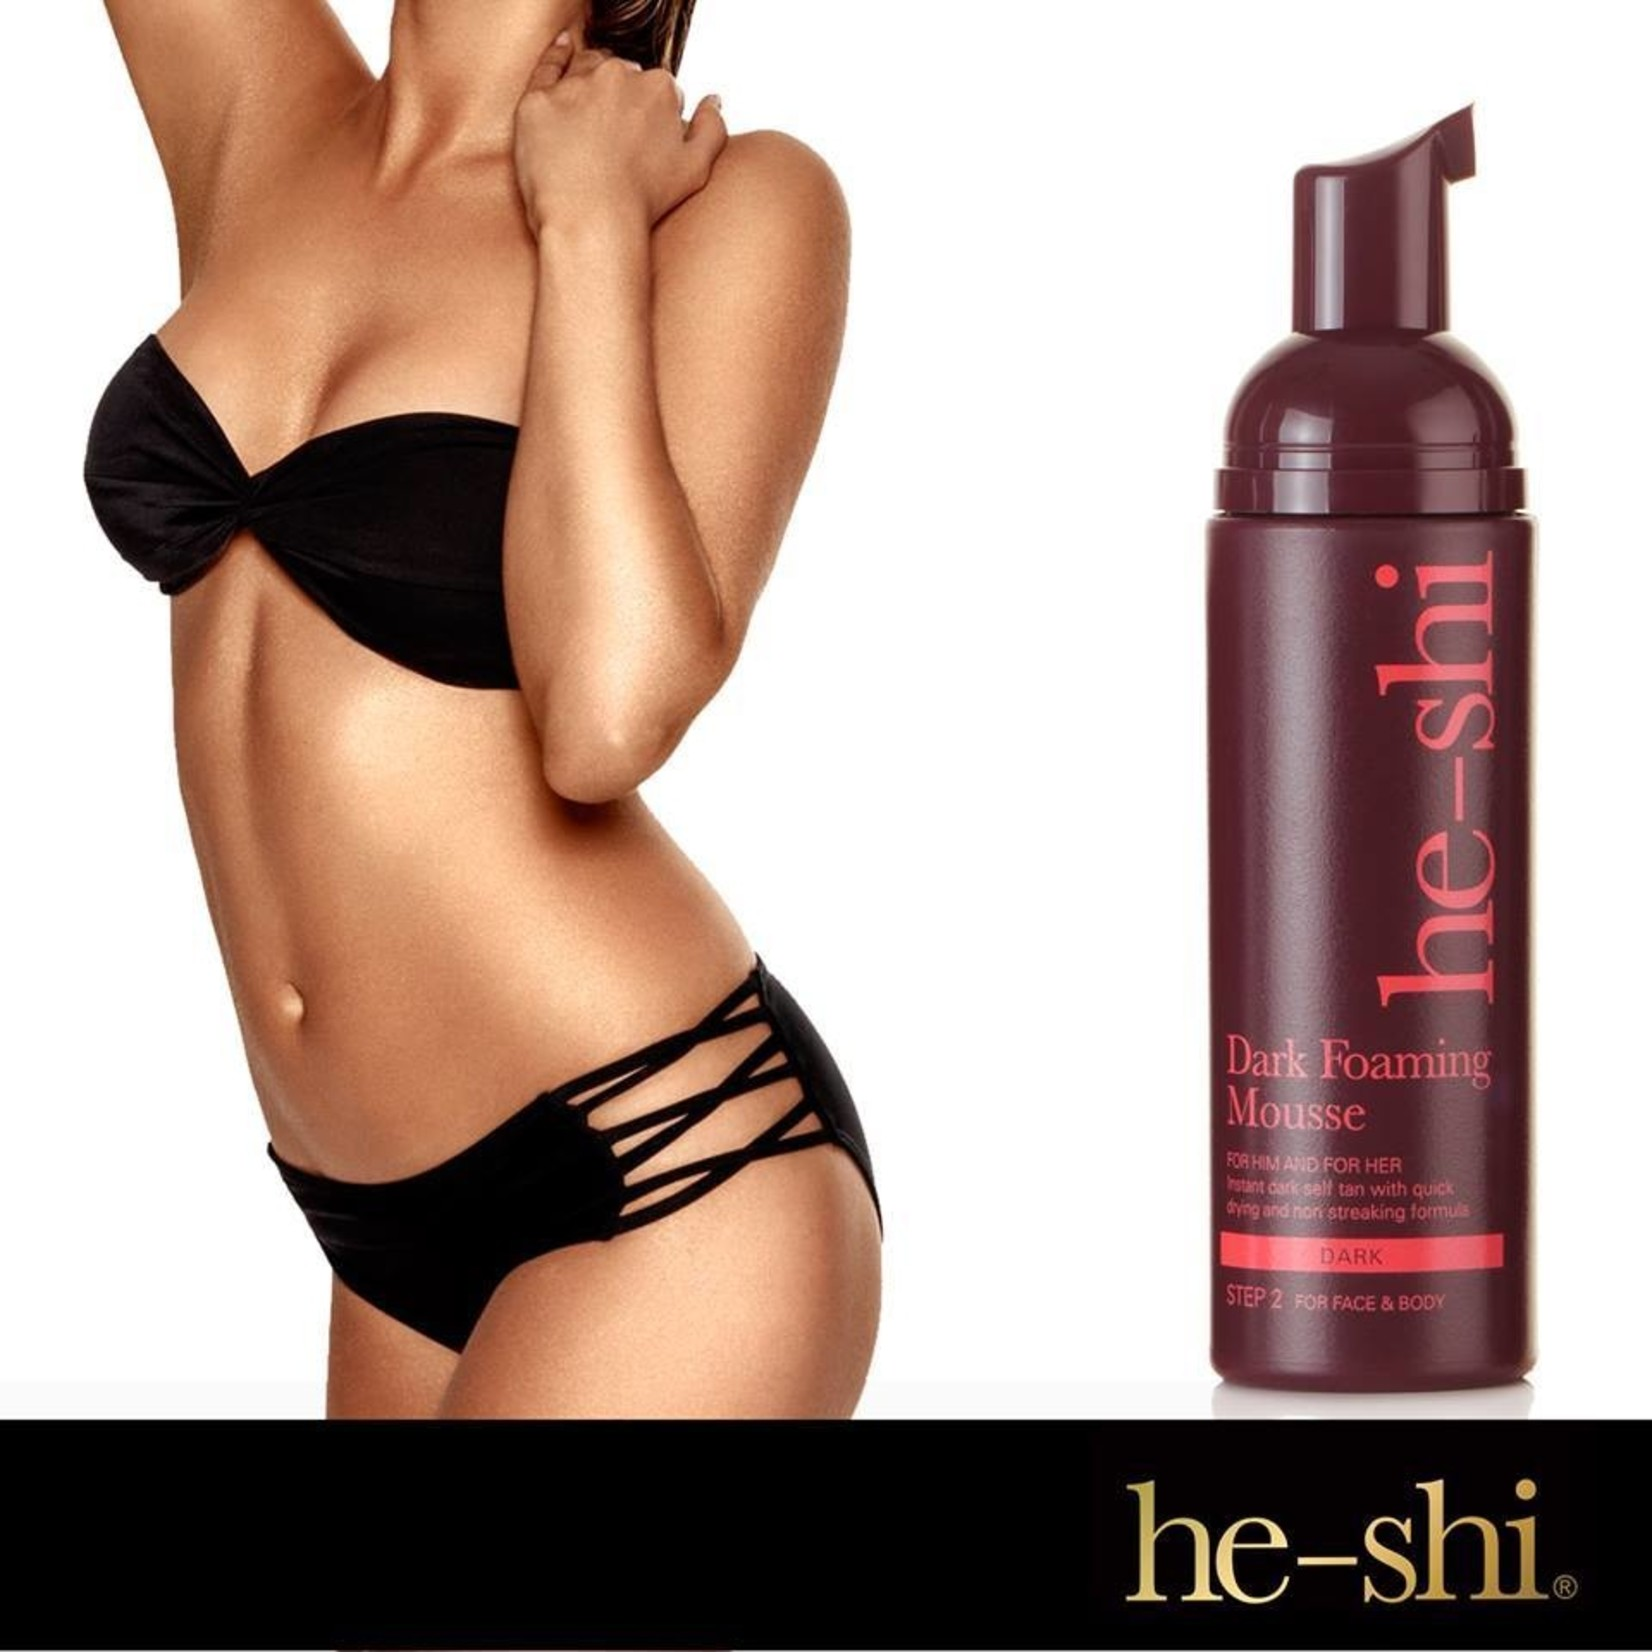 He-Shi Dark foaming mousse